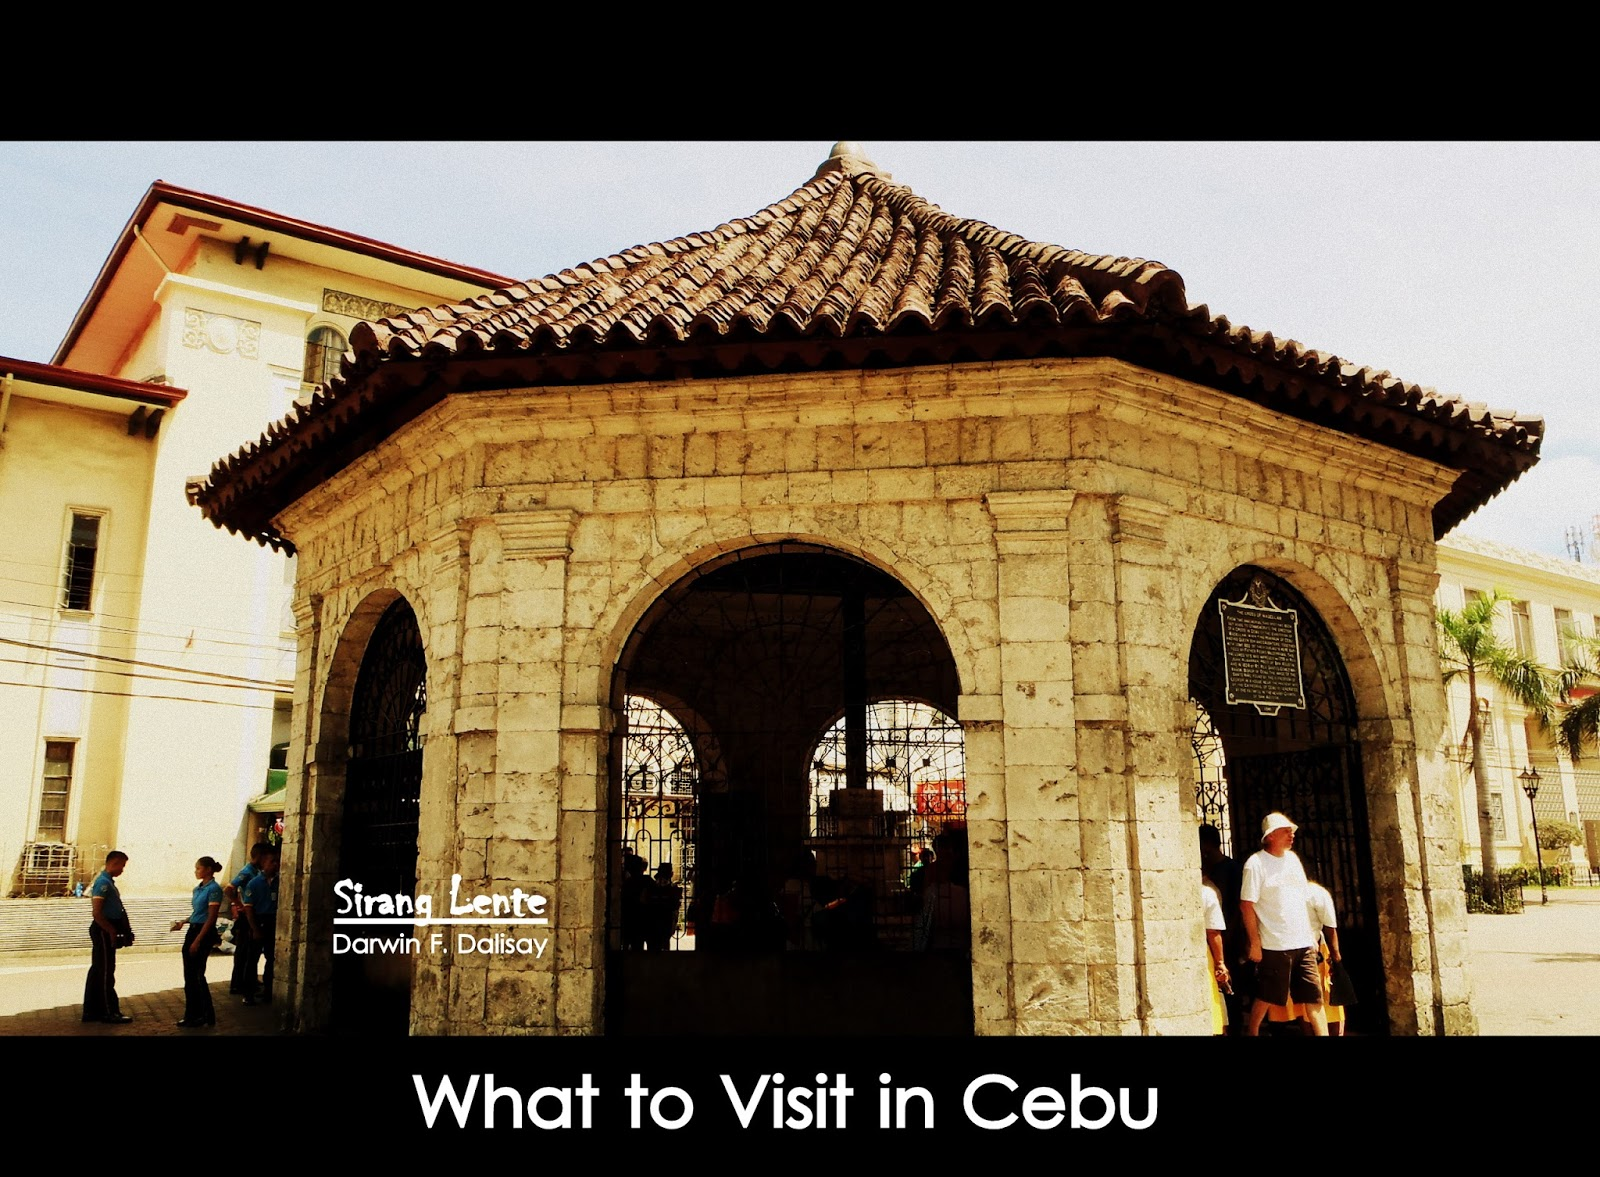 What to Visit in Cebu